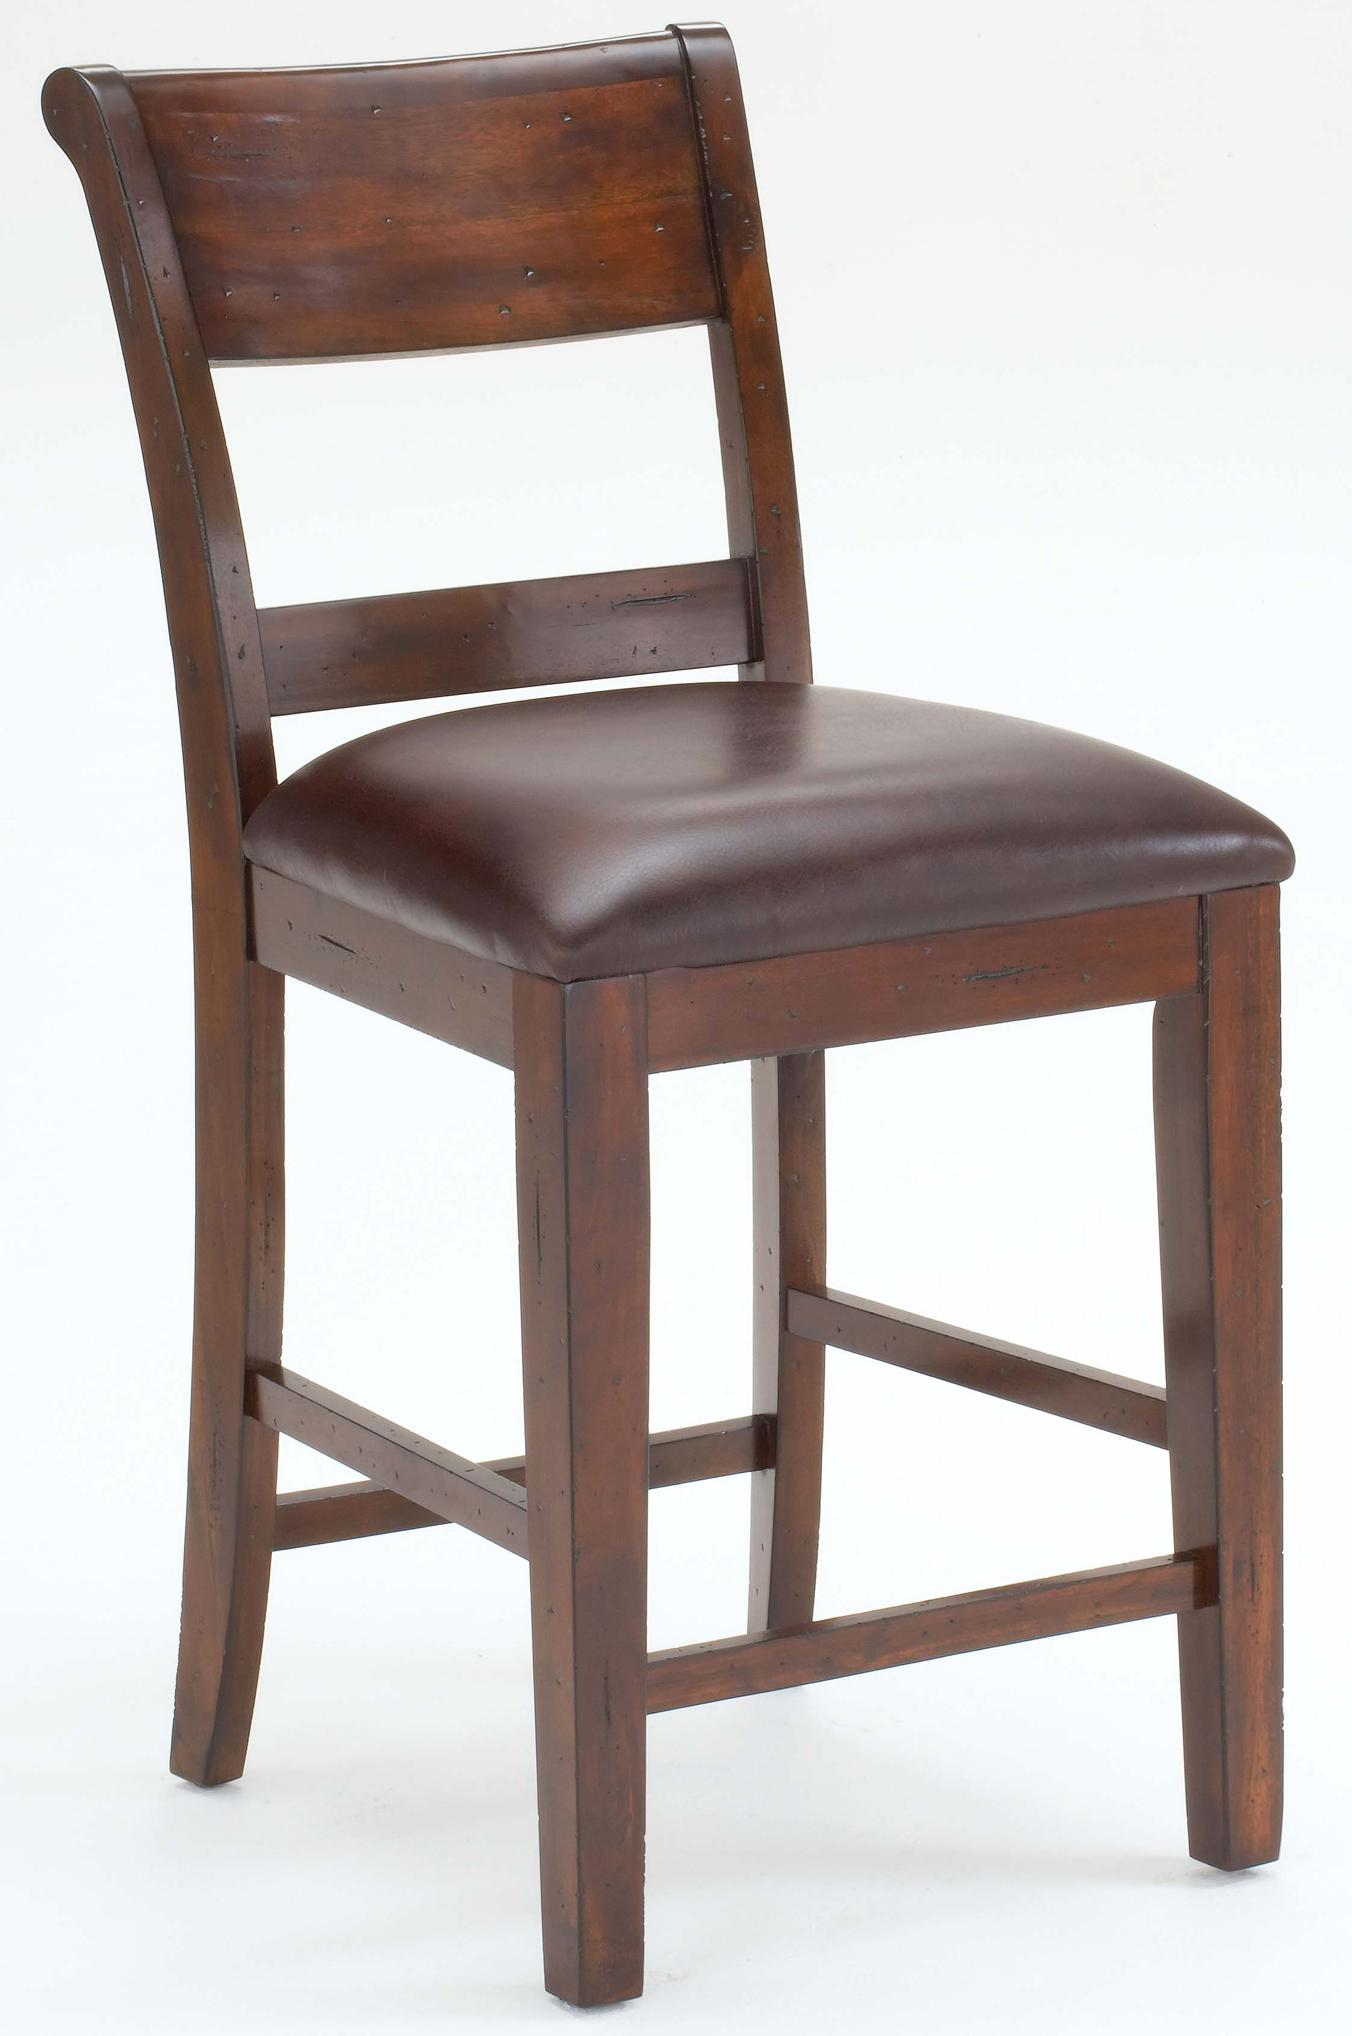 Hillsdale Park Avenue Non-Swivel Counter Stool - Item Number: 4692-822